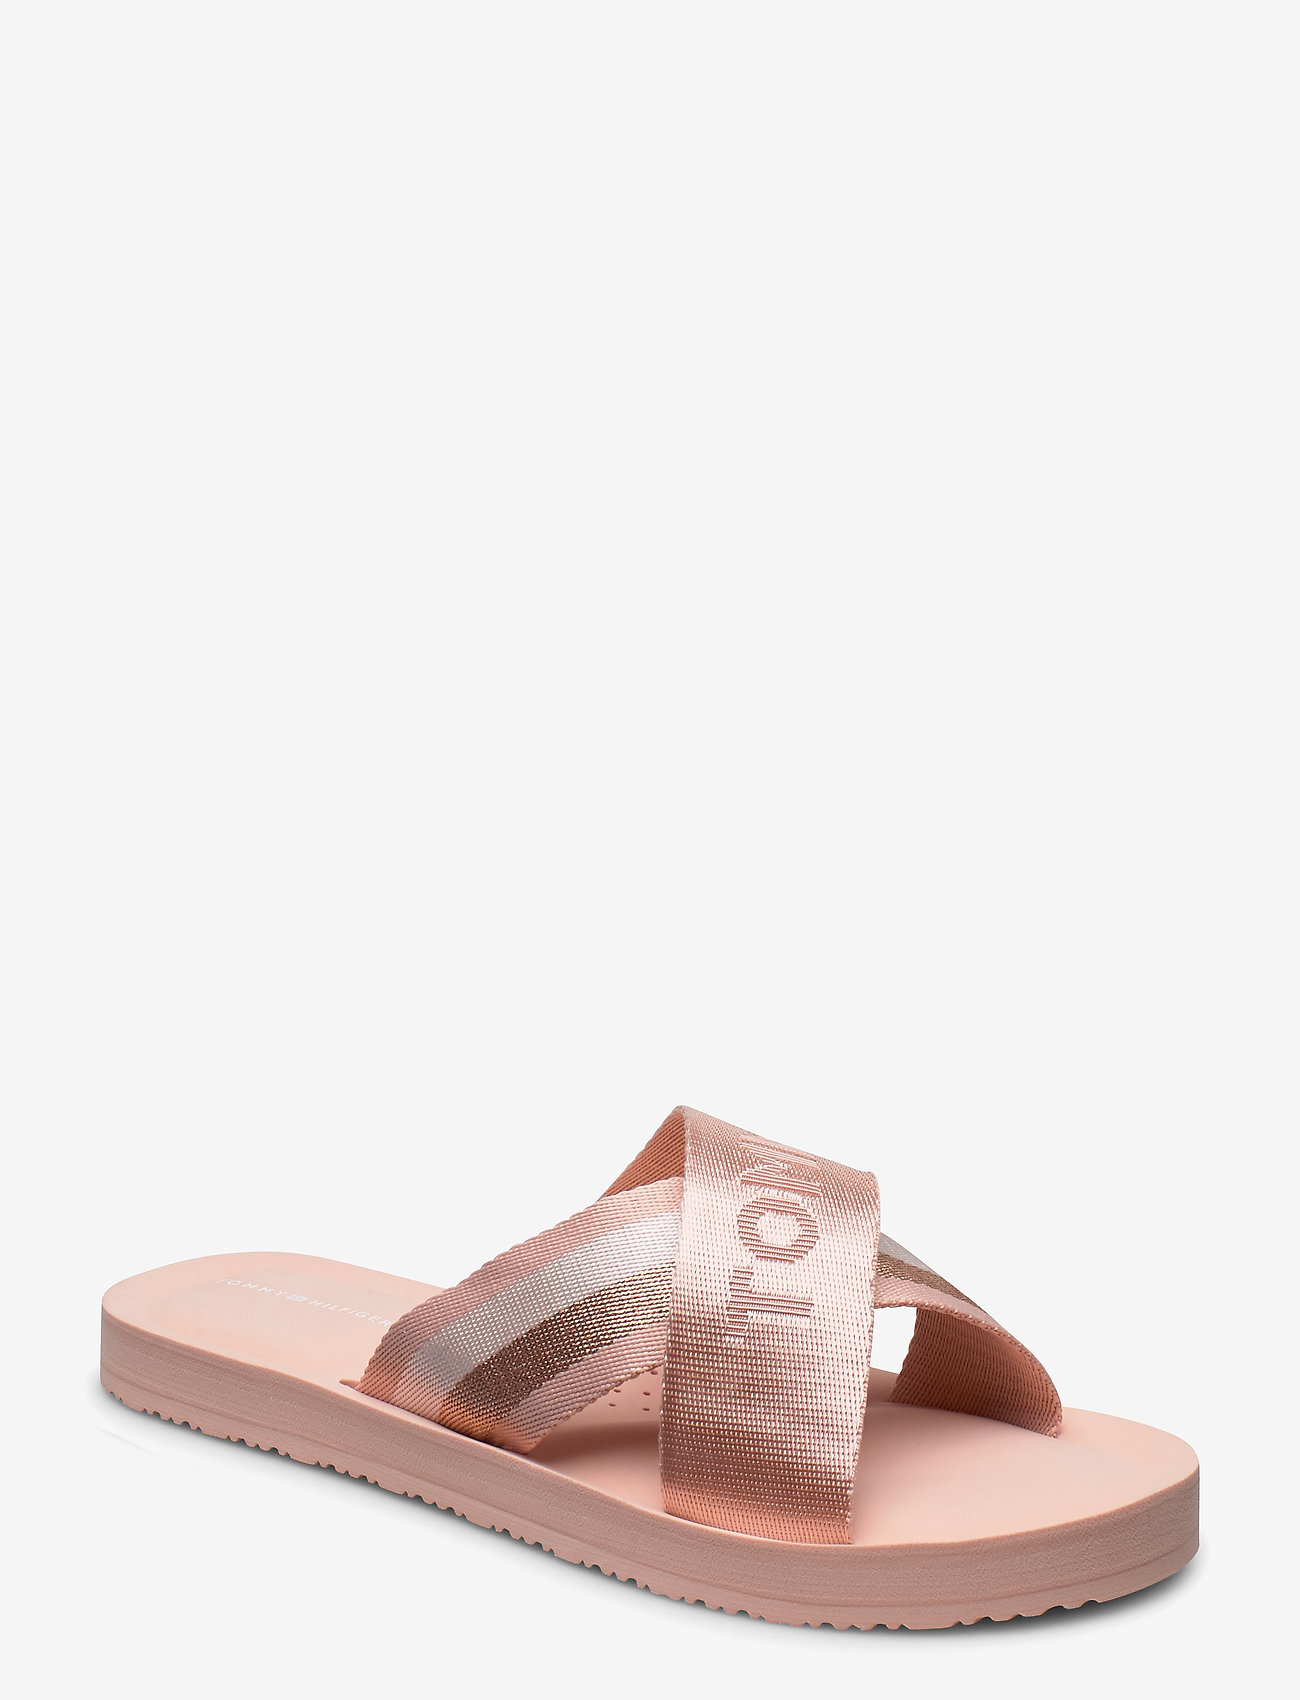 Tommy Hilfiger - TOMMY STRAP COMFY BEACH SANDAL - matalat sandaalit - cameo - 0